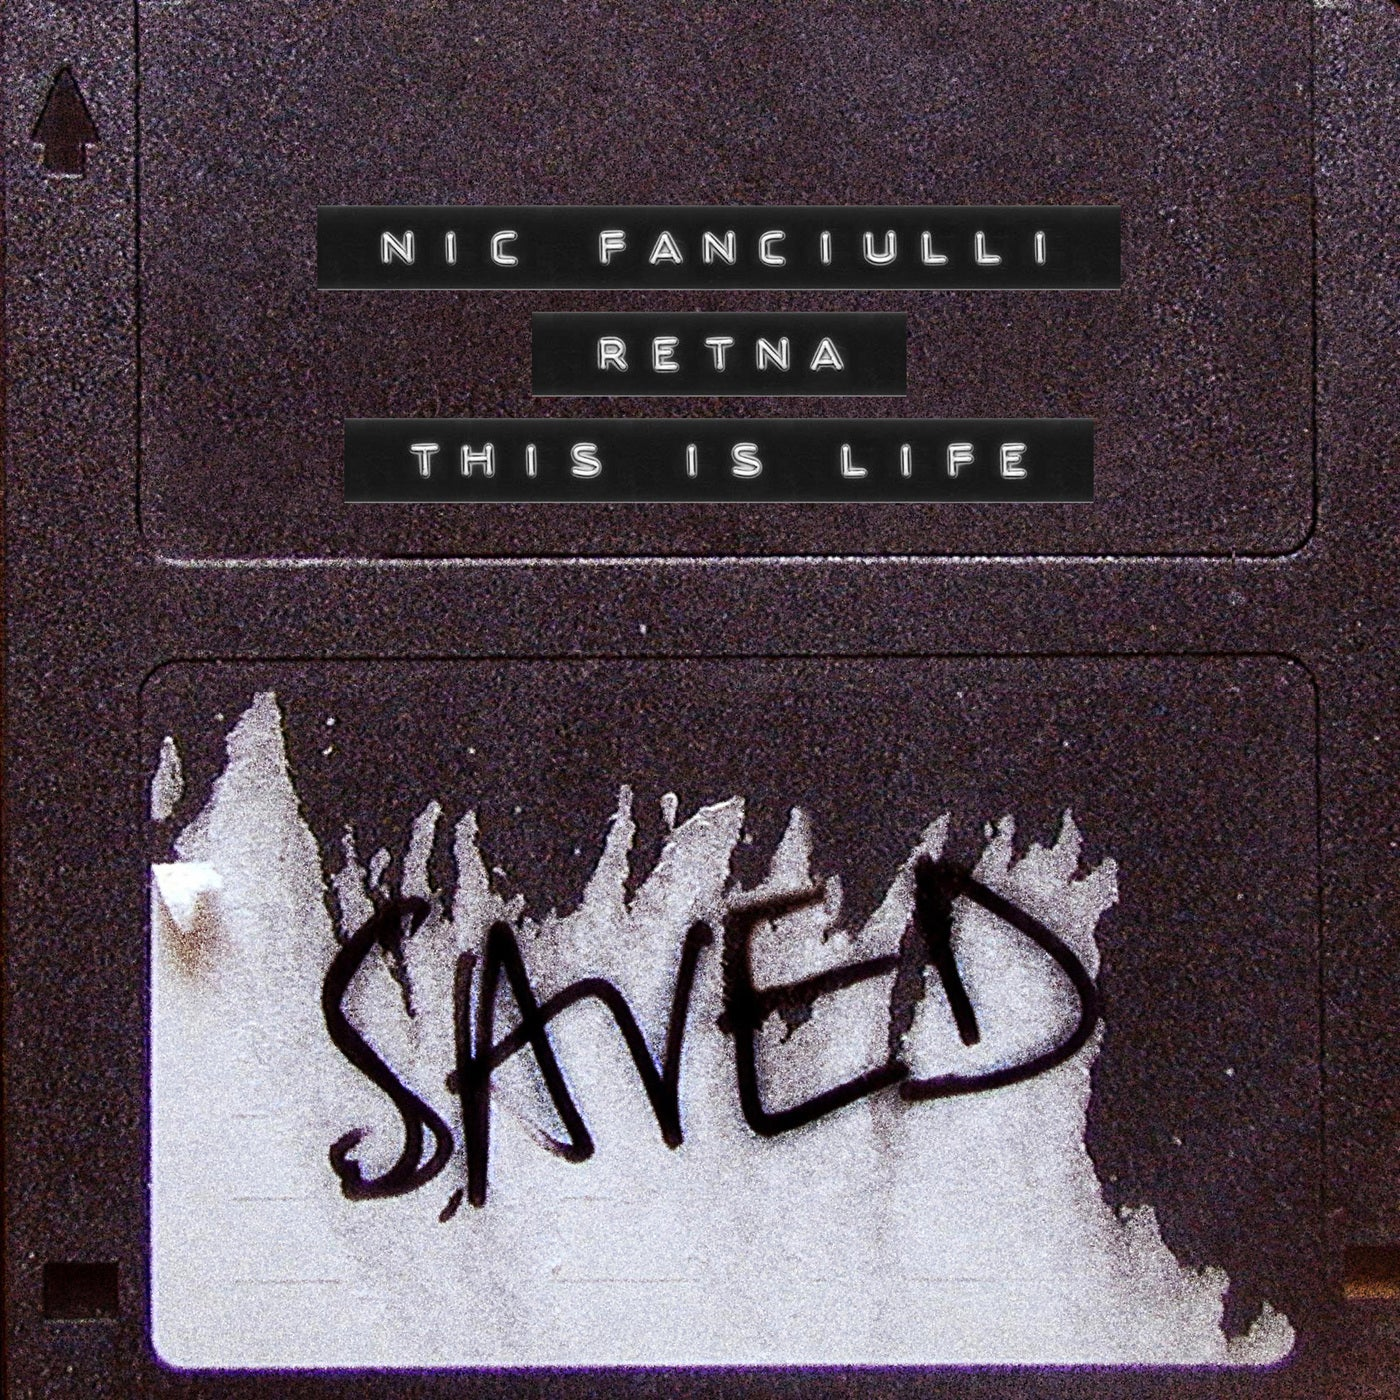 This Is Life (Extended Mix)